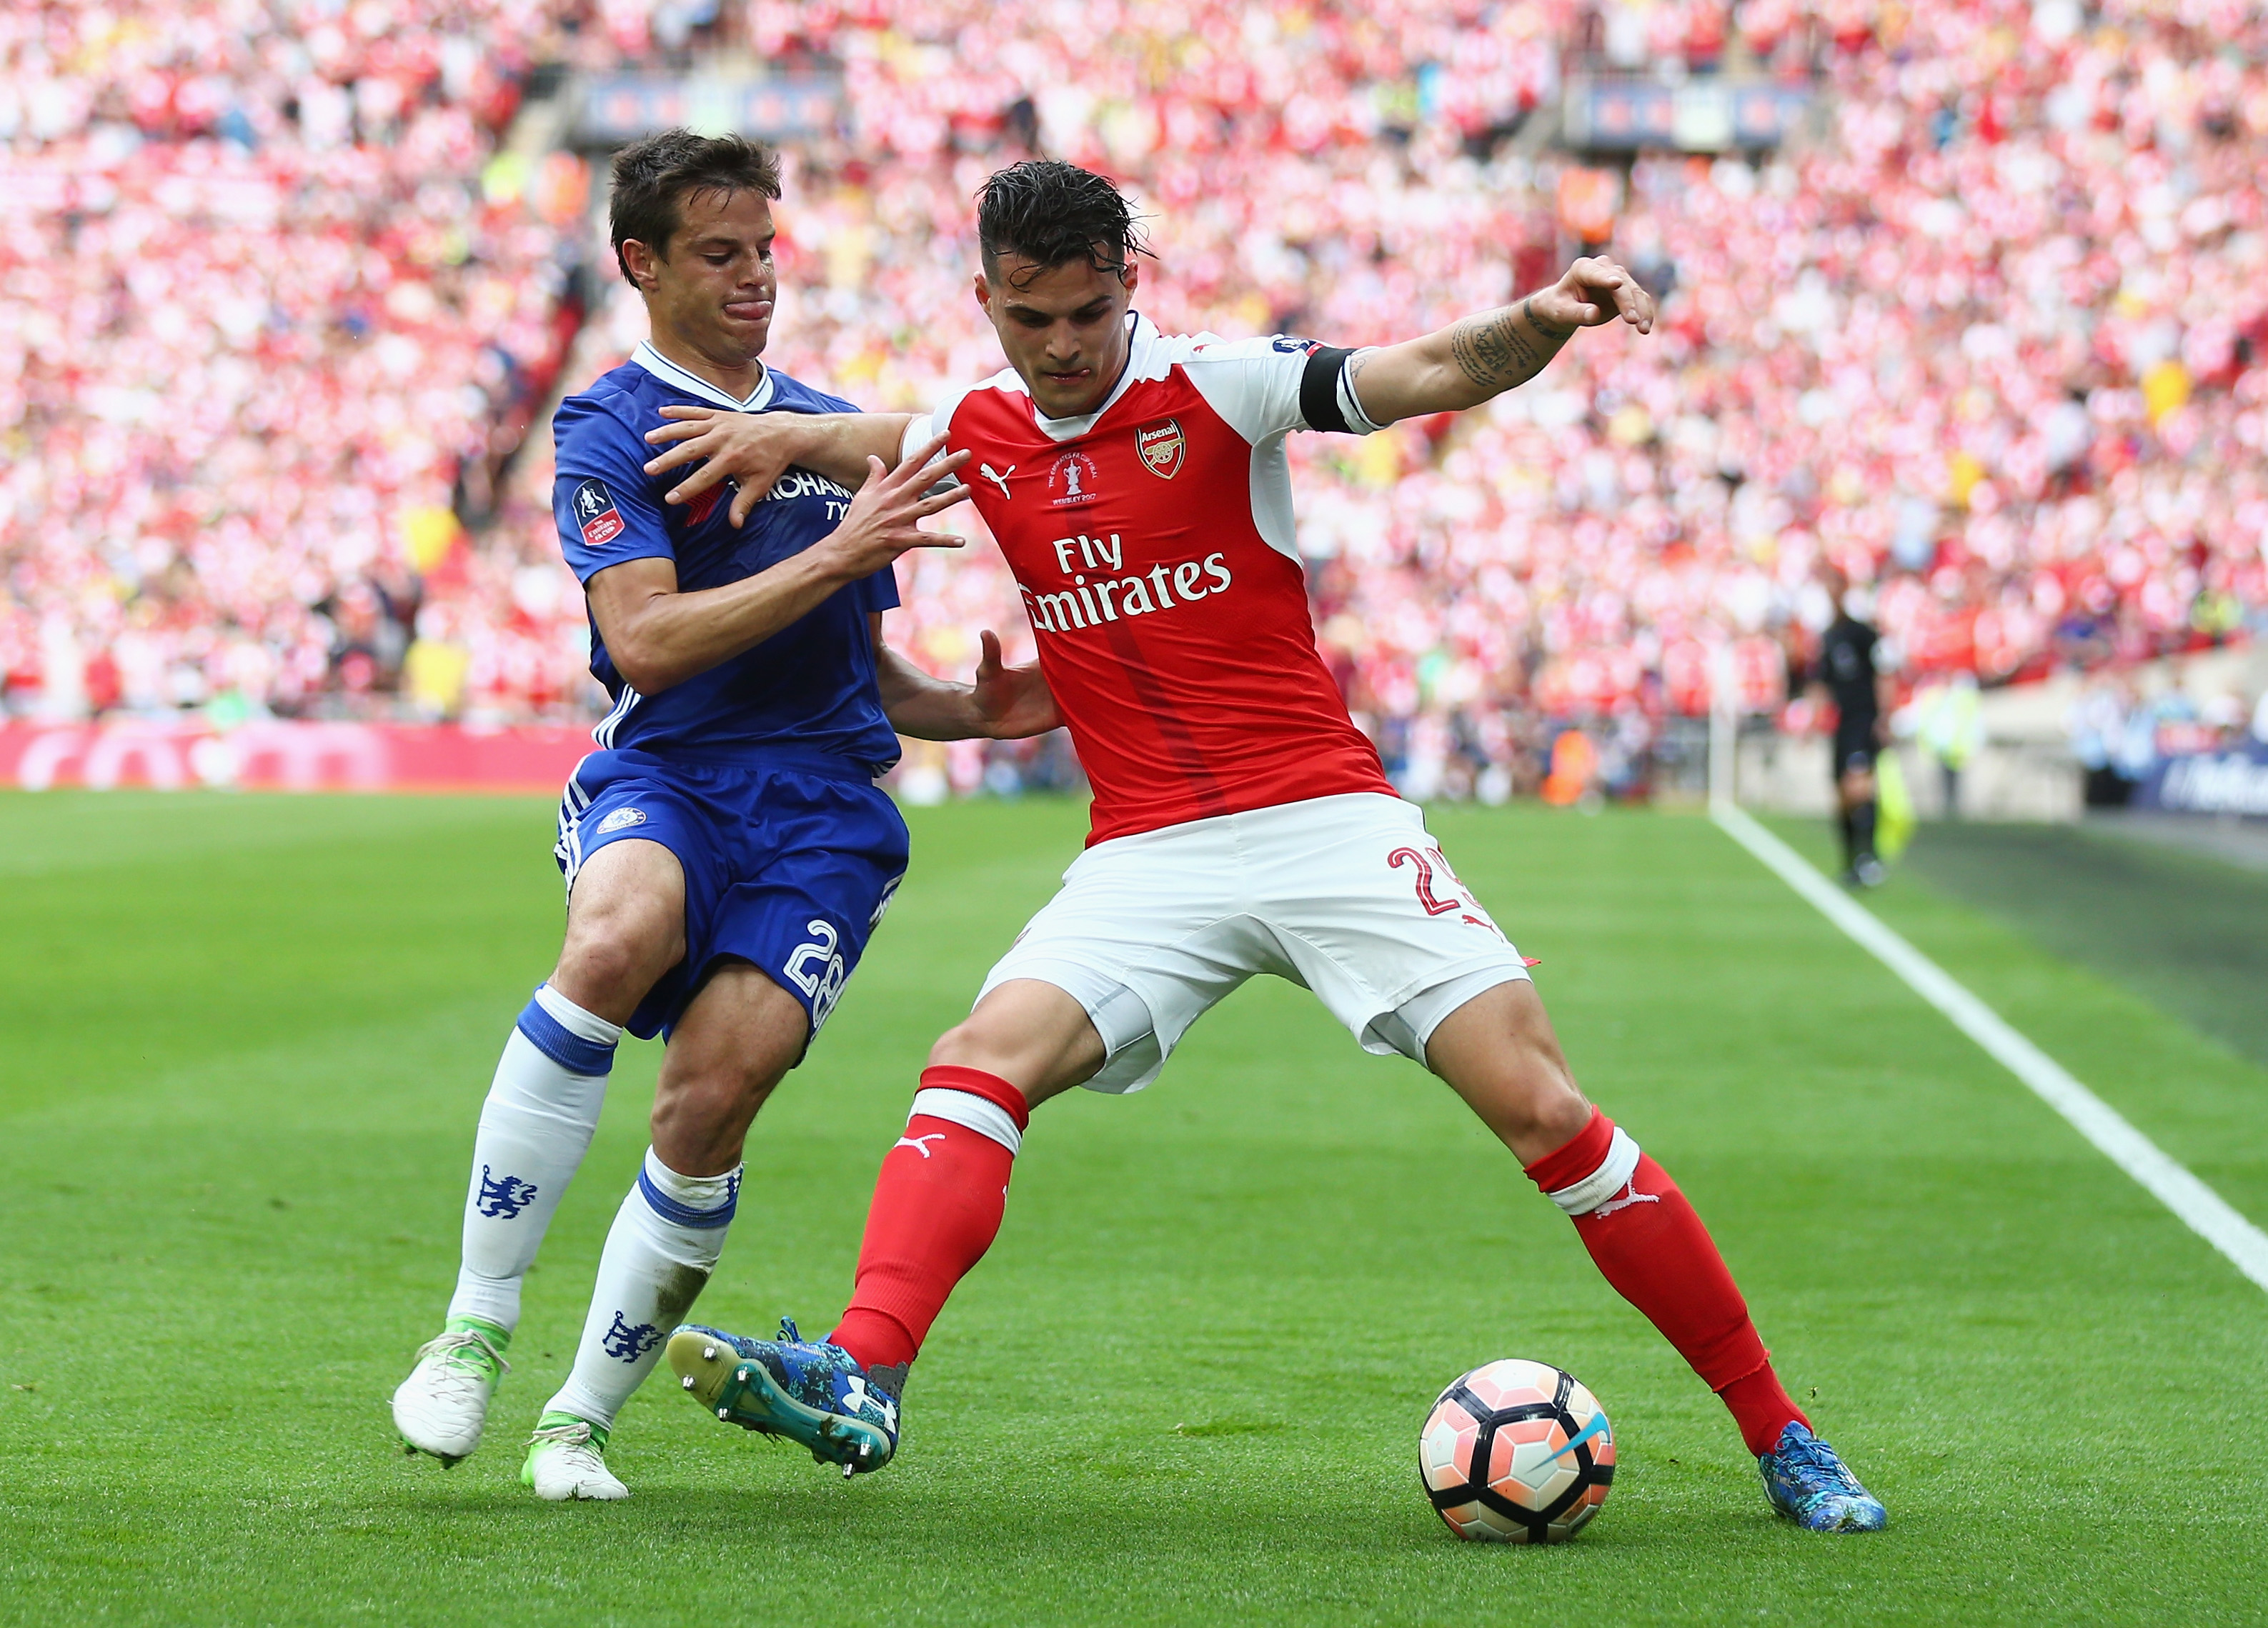 Arsenal Gallery: Arsenal: Granit Xhaka Shows Glimpse Of His Greatness